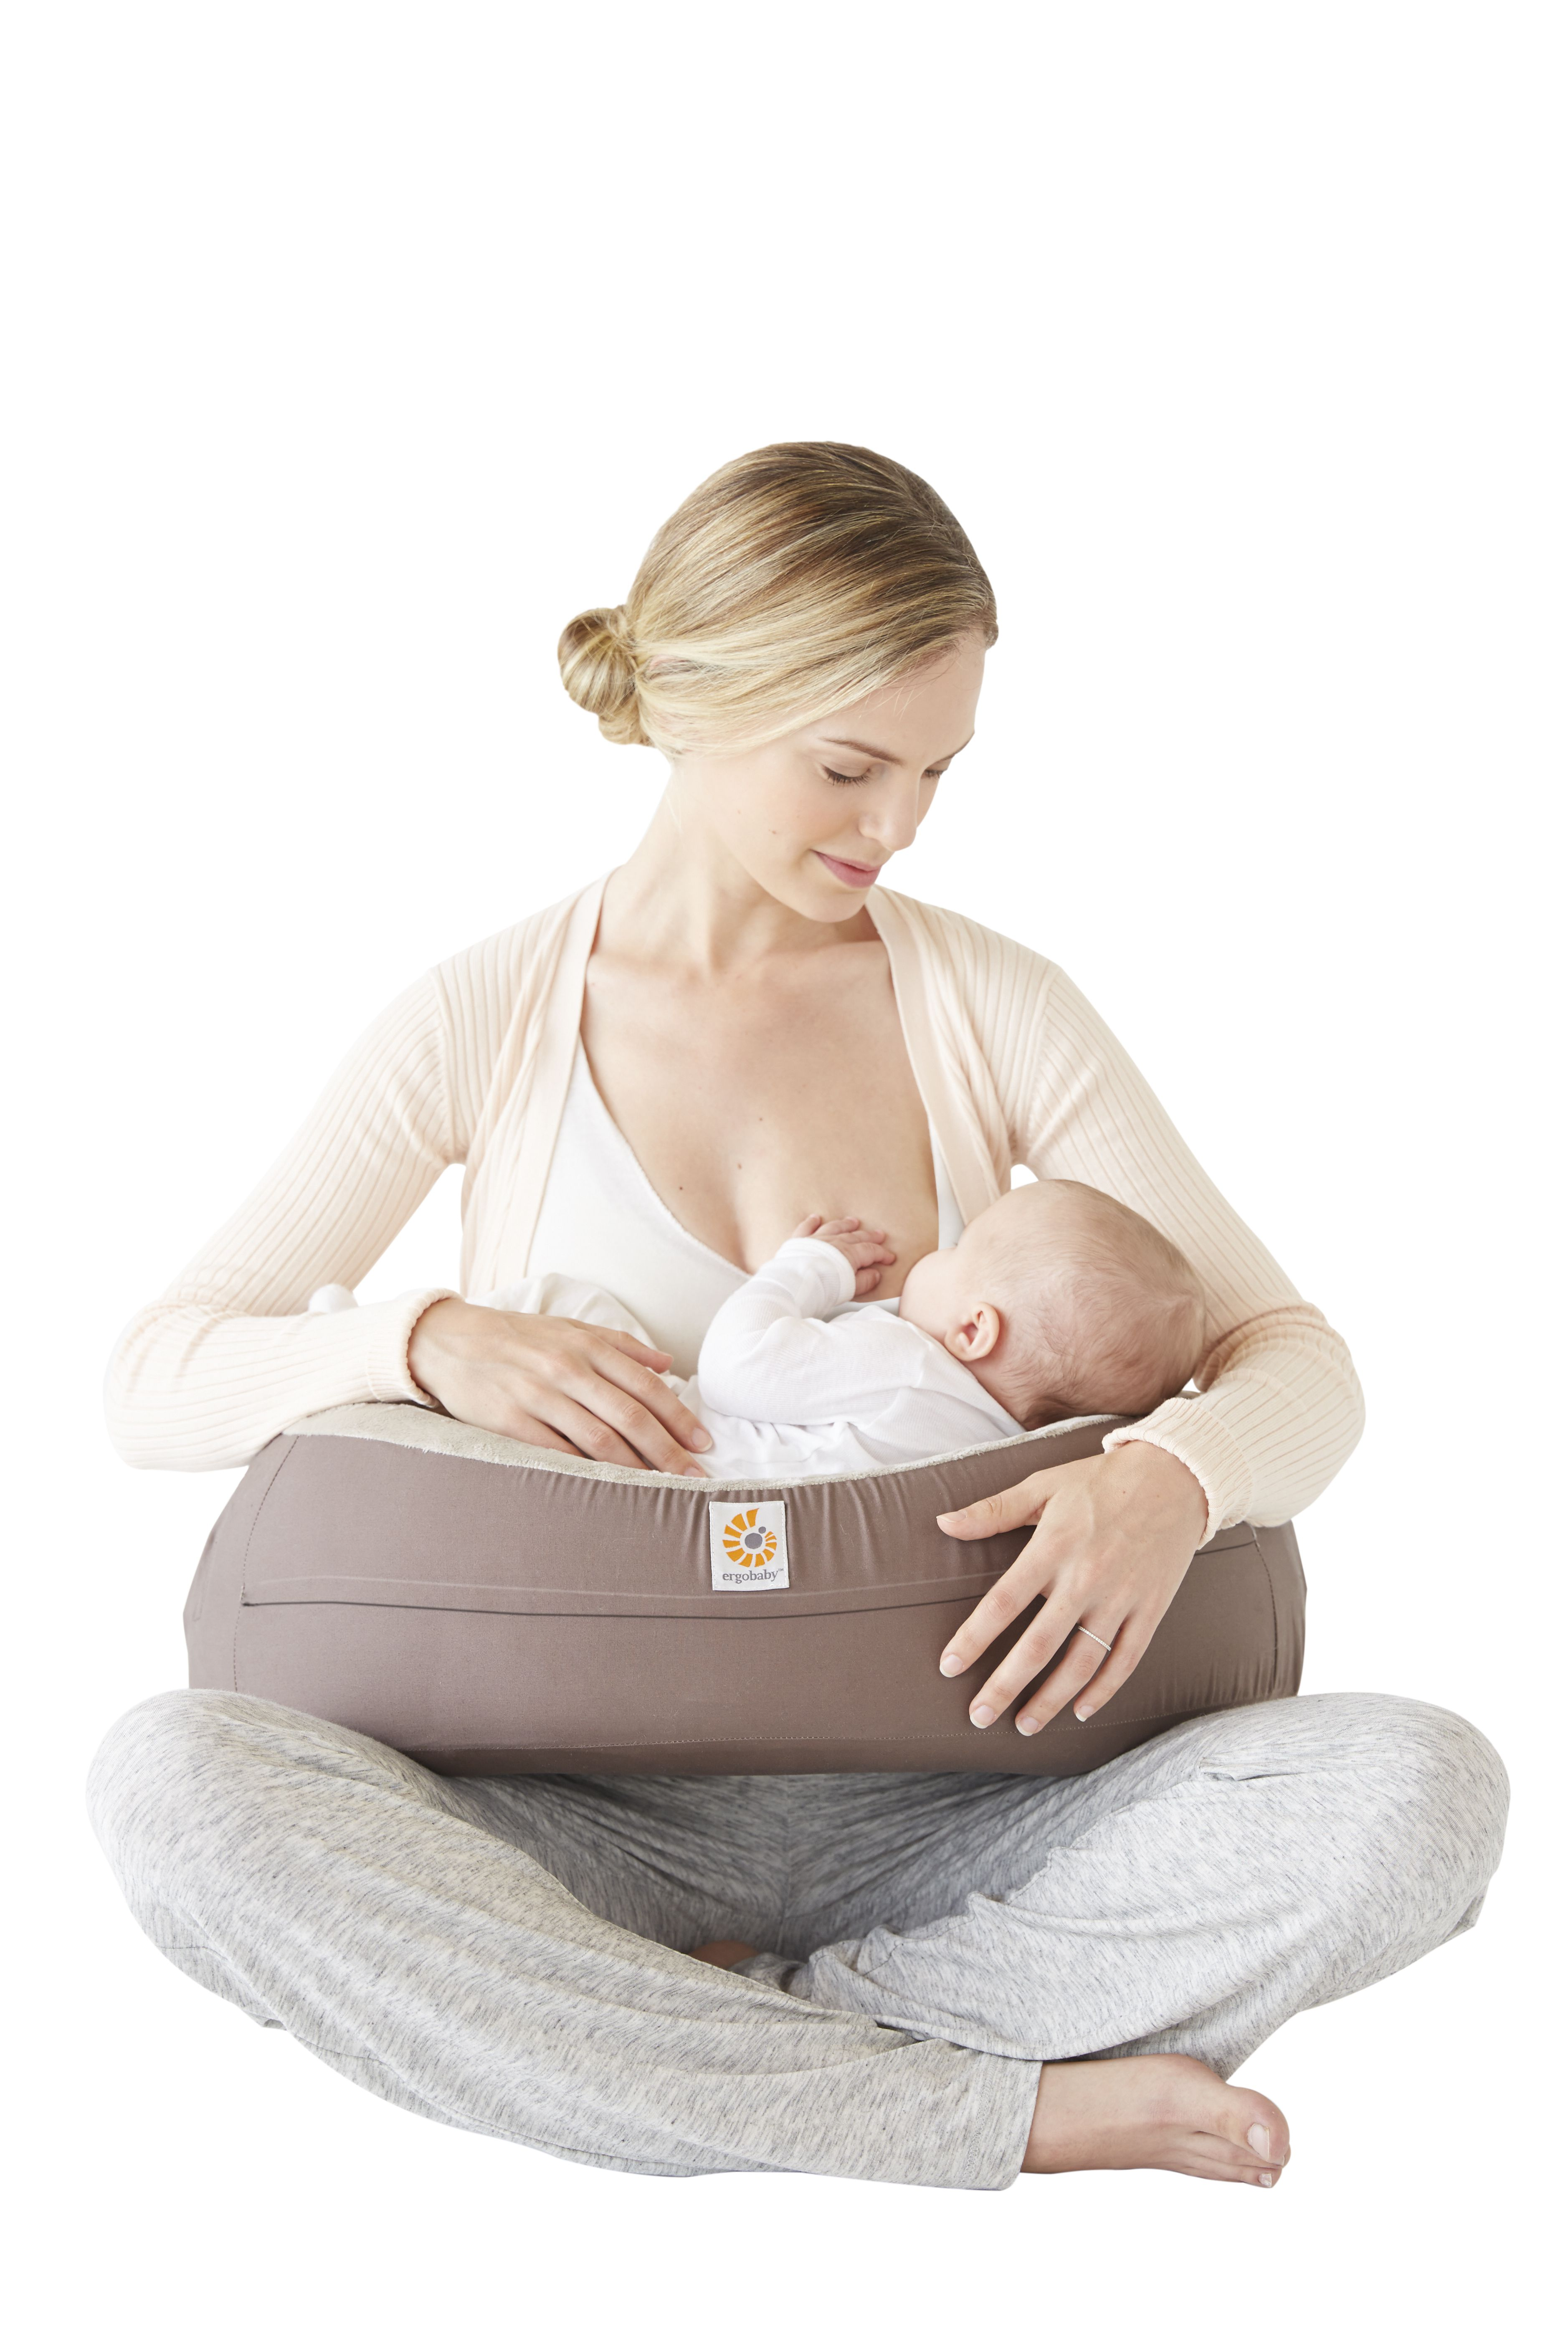 Which Type Of Breastfeeding Pillow Should You Choose